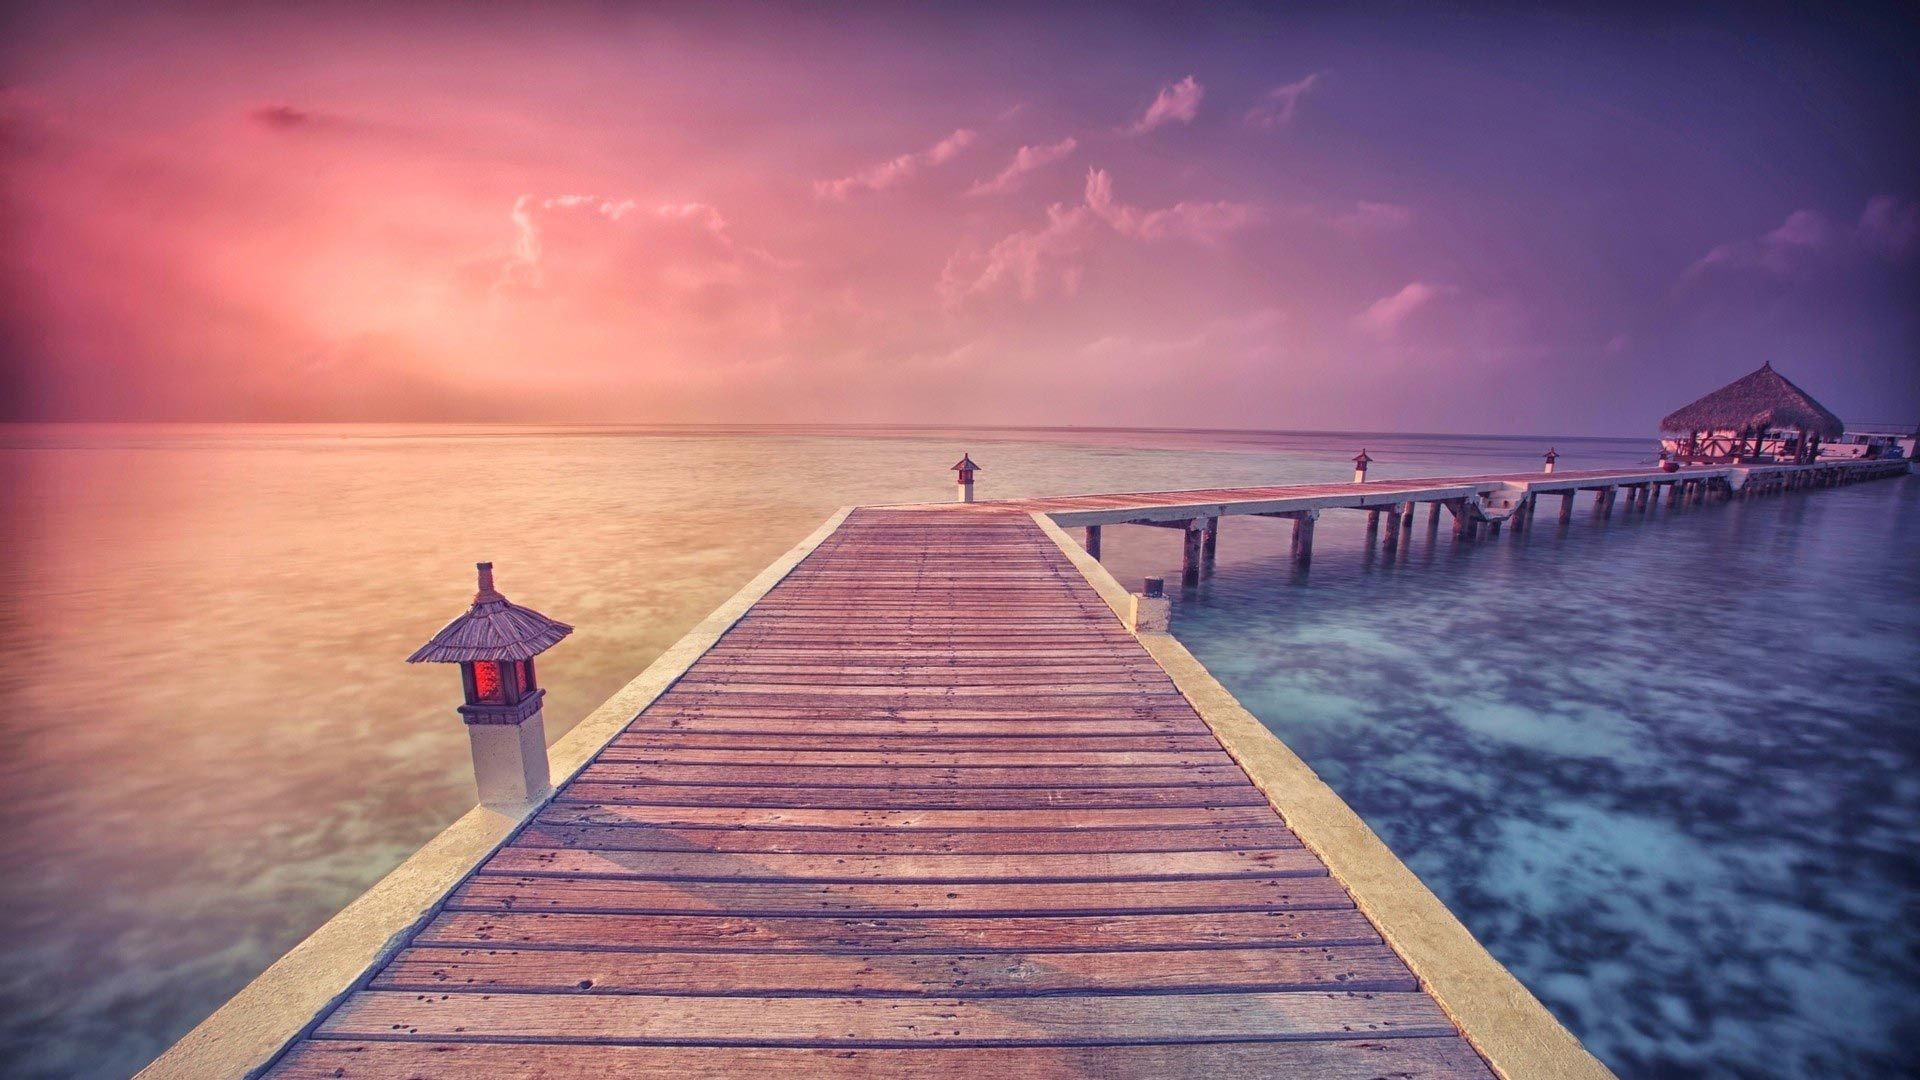 Pier Perspective Theme For Windows 10 8 7